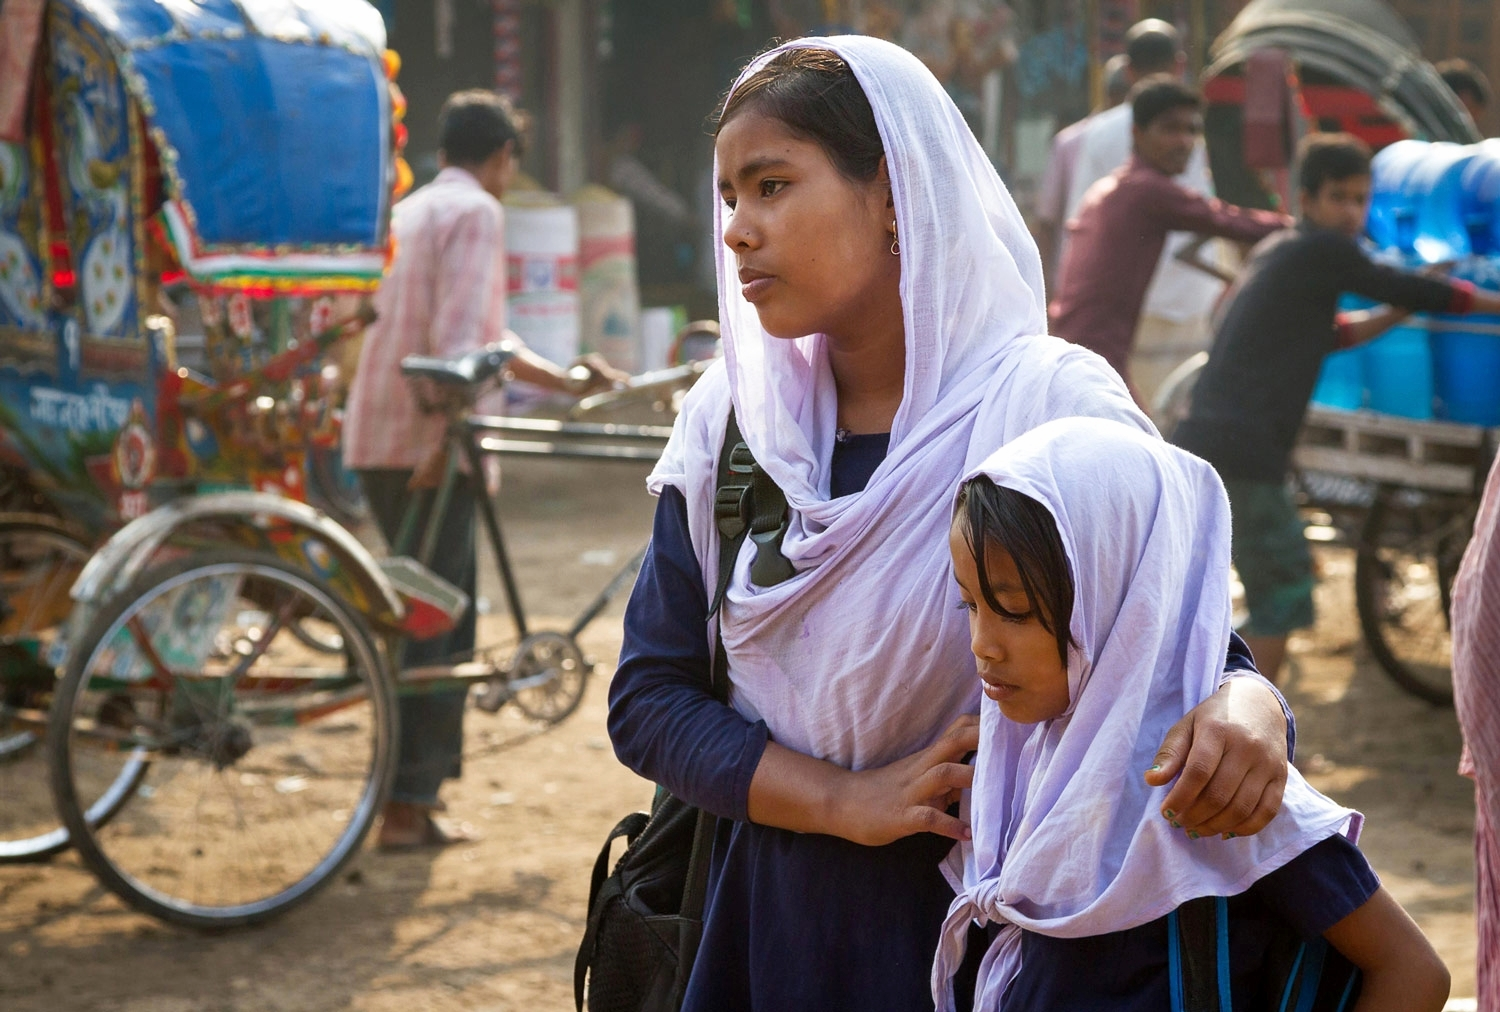 Two sisters await a rickshaw to take them to school; Duaripara slum, Dhaka, Bangladesh